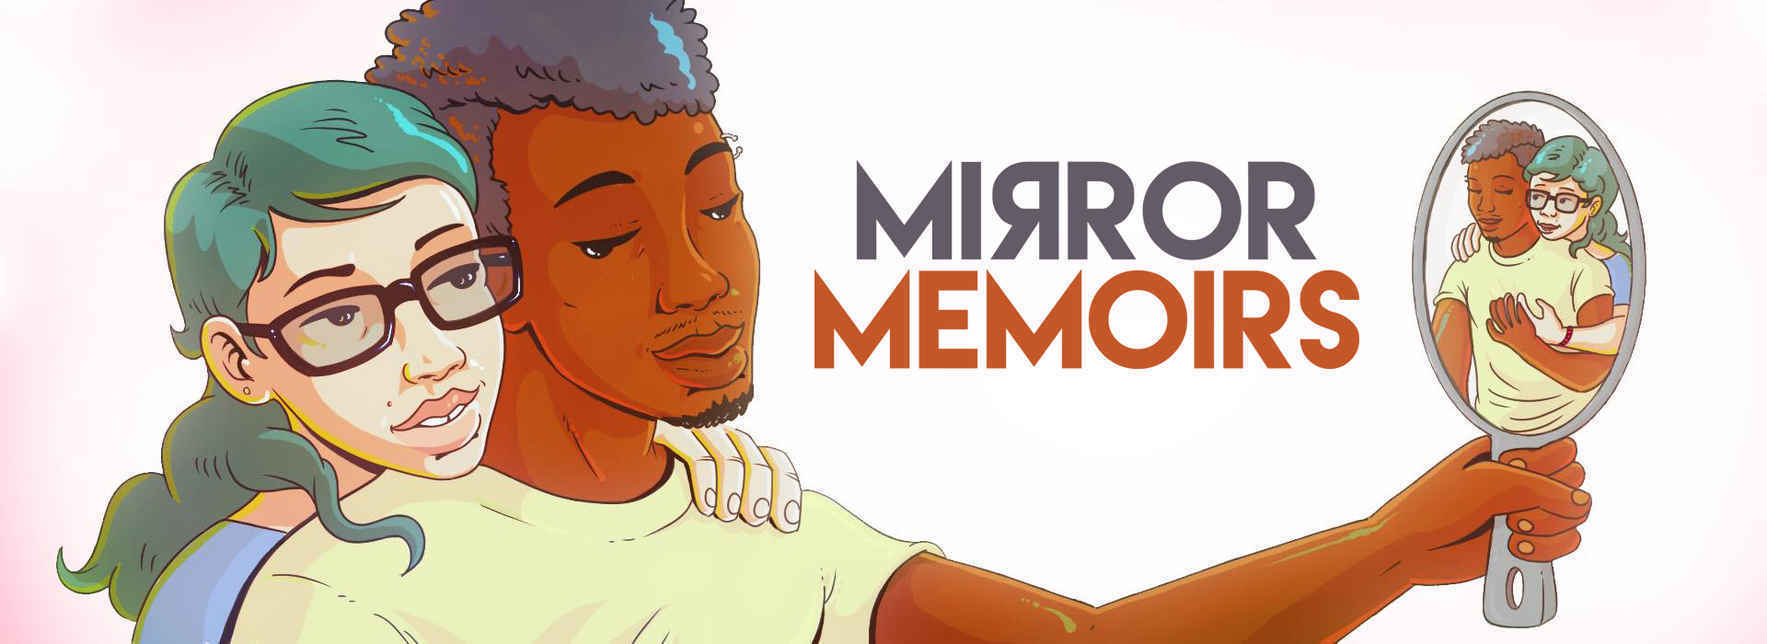 Donate now to fund Mirror Memoirs  image